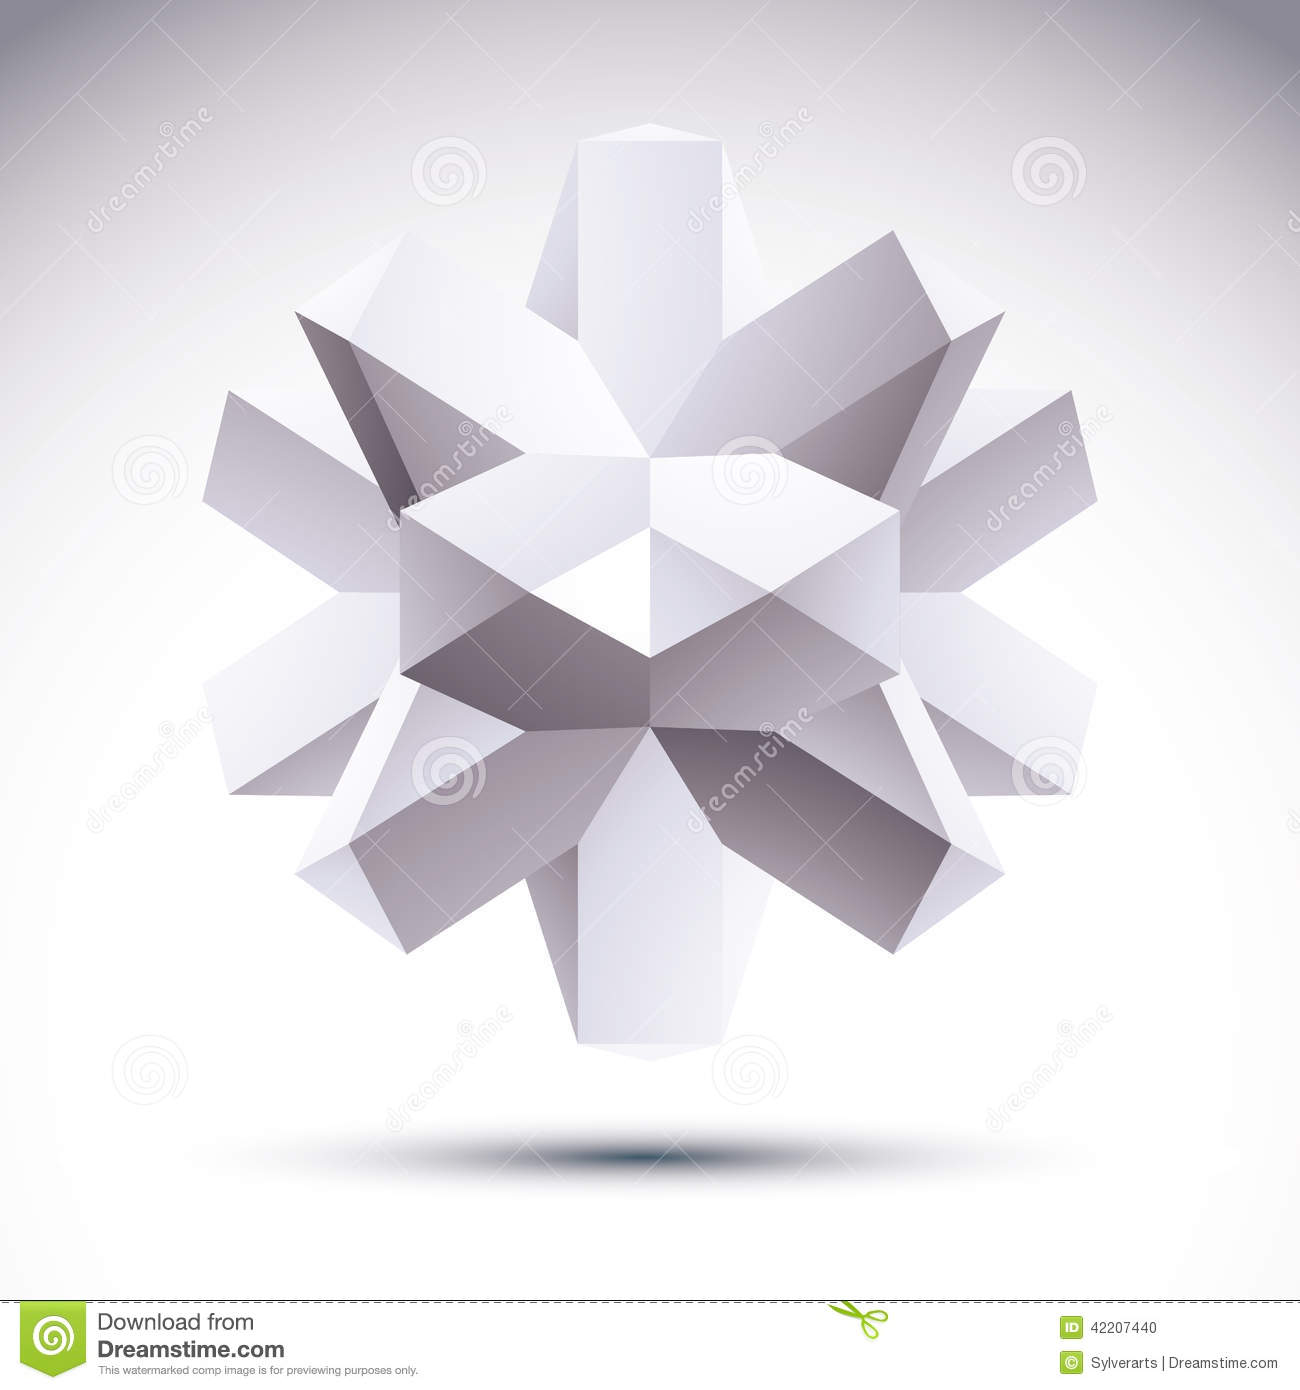 3d Polygonal Geometric Object Vector Abstract Design